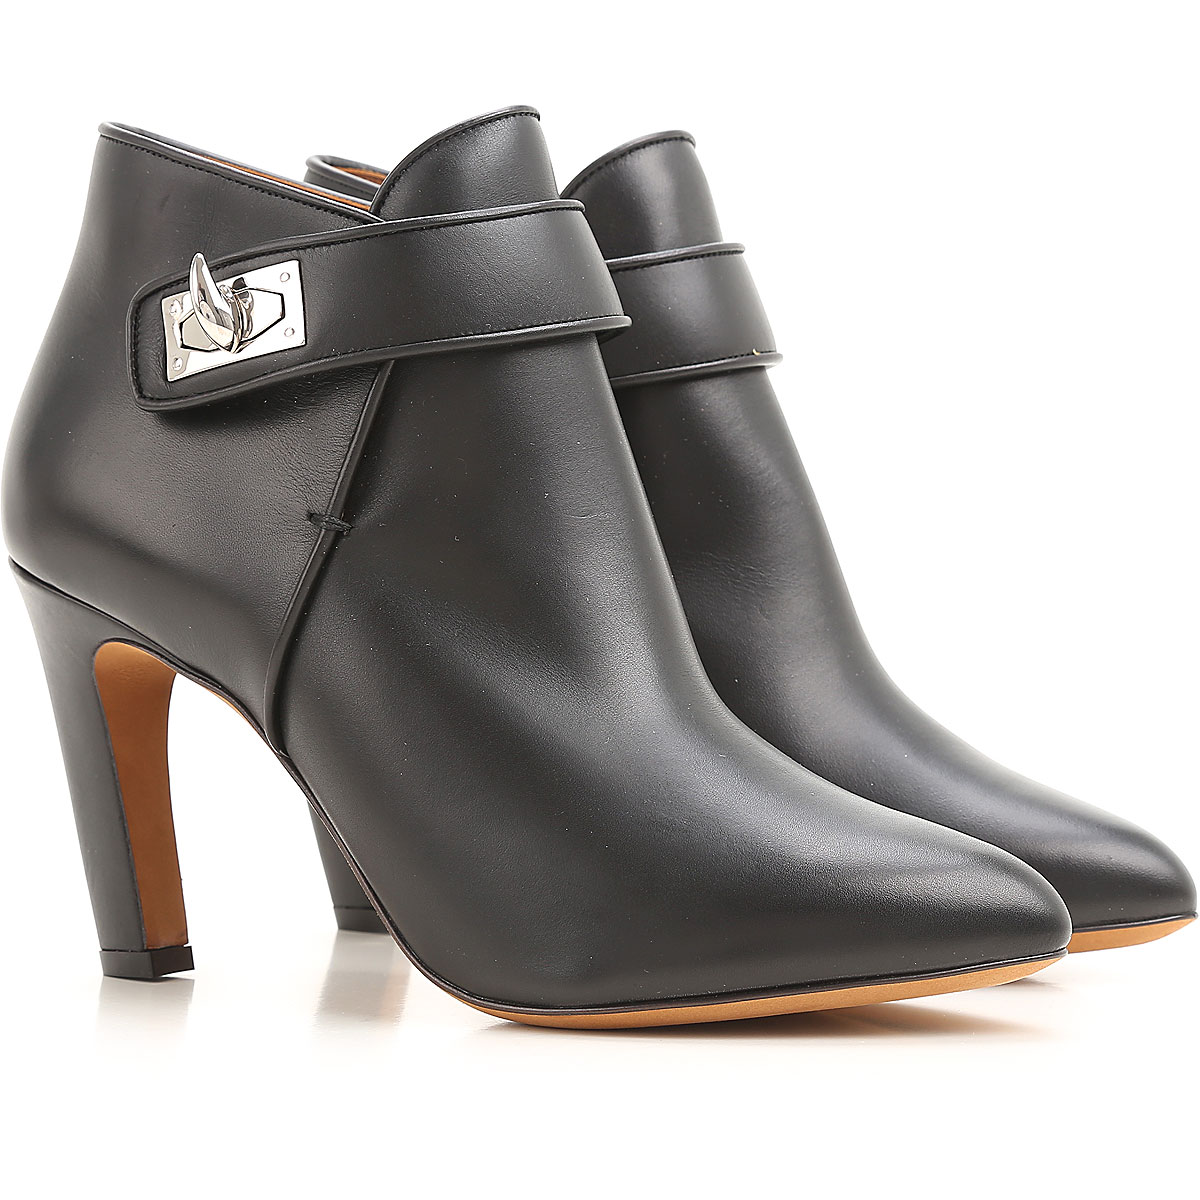 Givenchy Boots for Women, Booties On Sale in Outlet, Black, Leather, 2019, 5 6